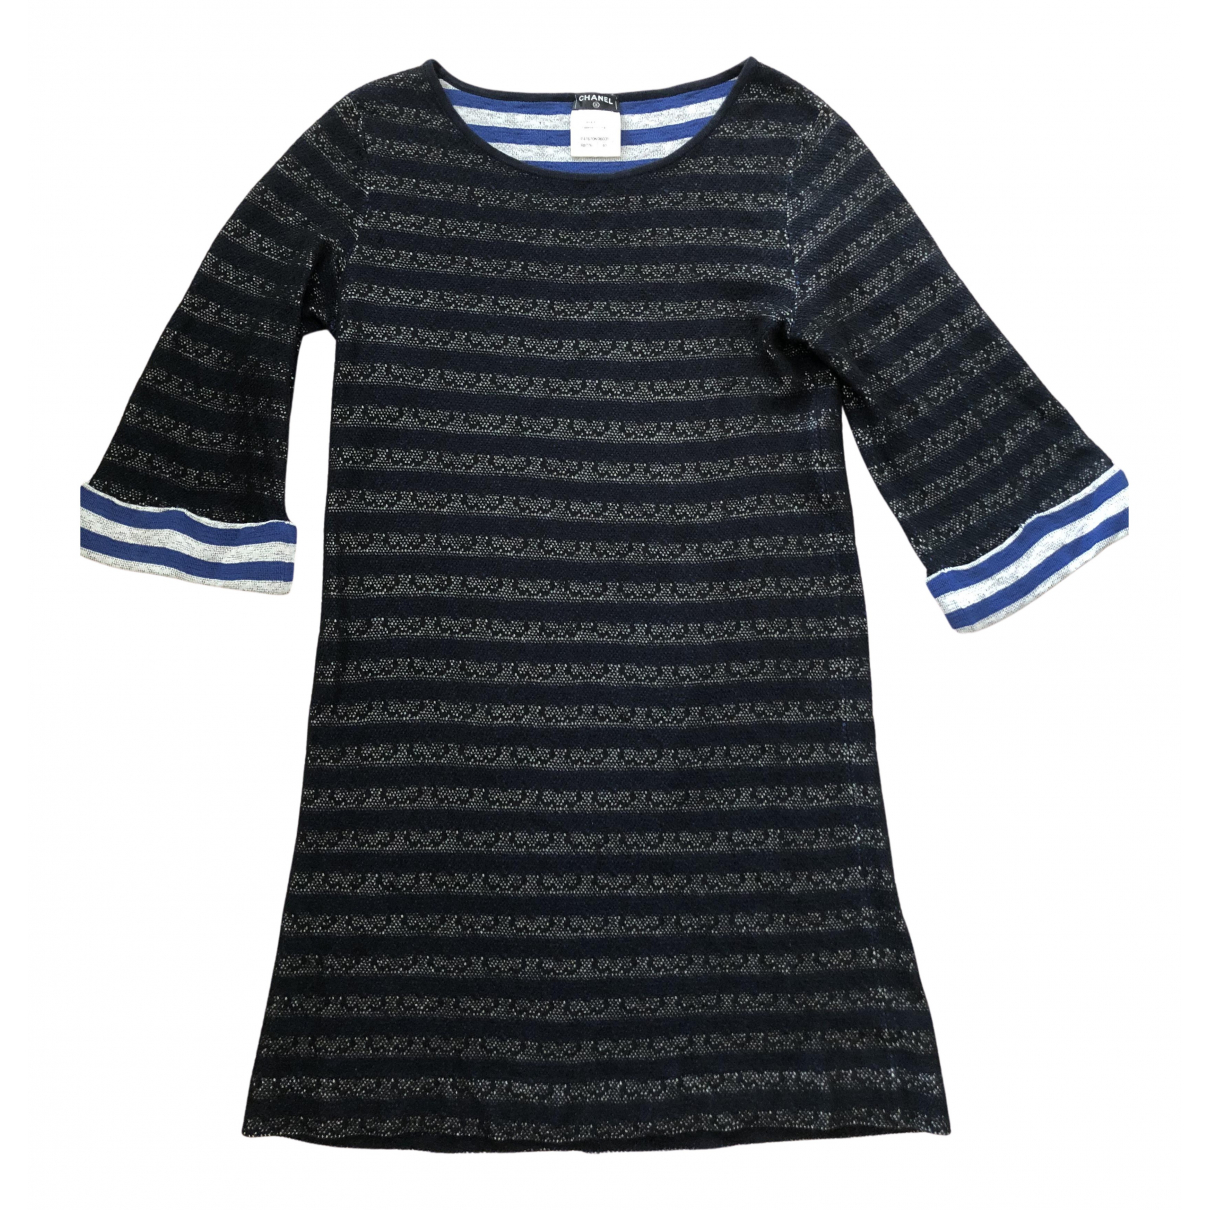 Chanel \N Kleid in  Bunt Seide